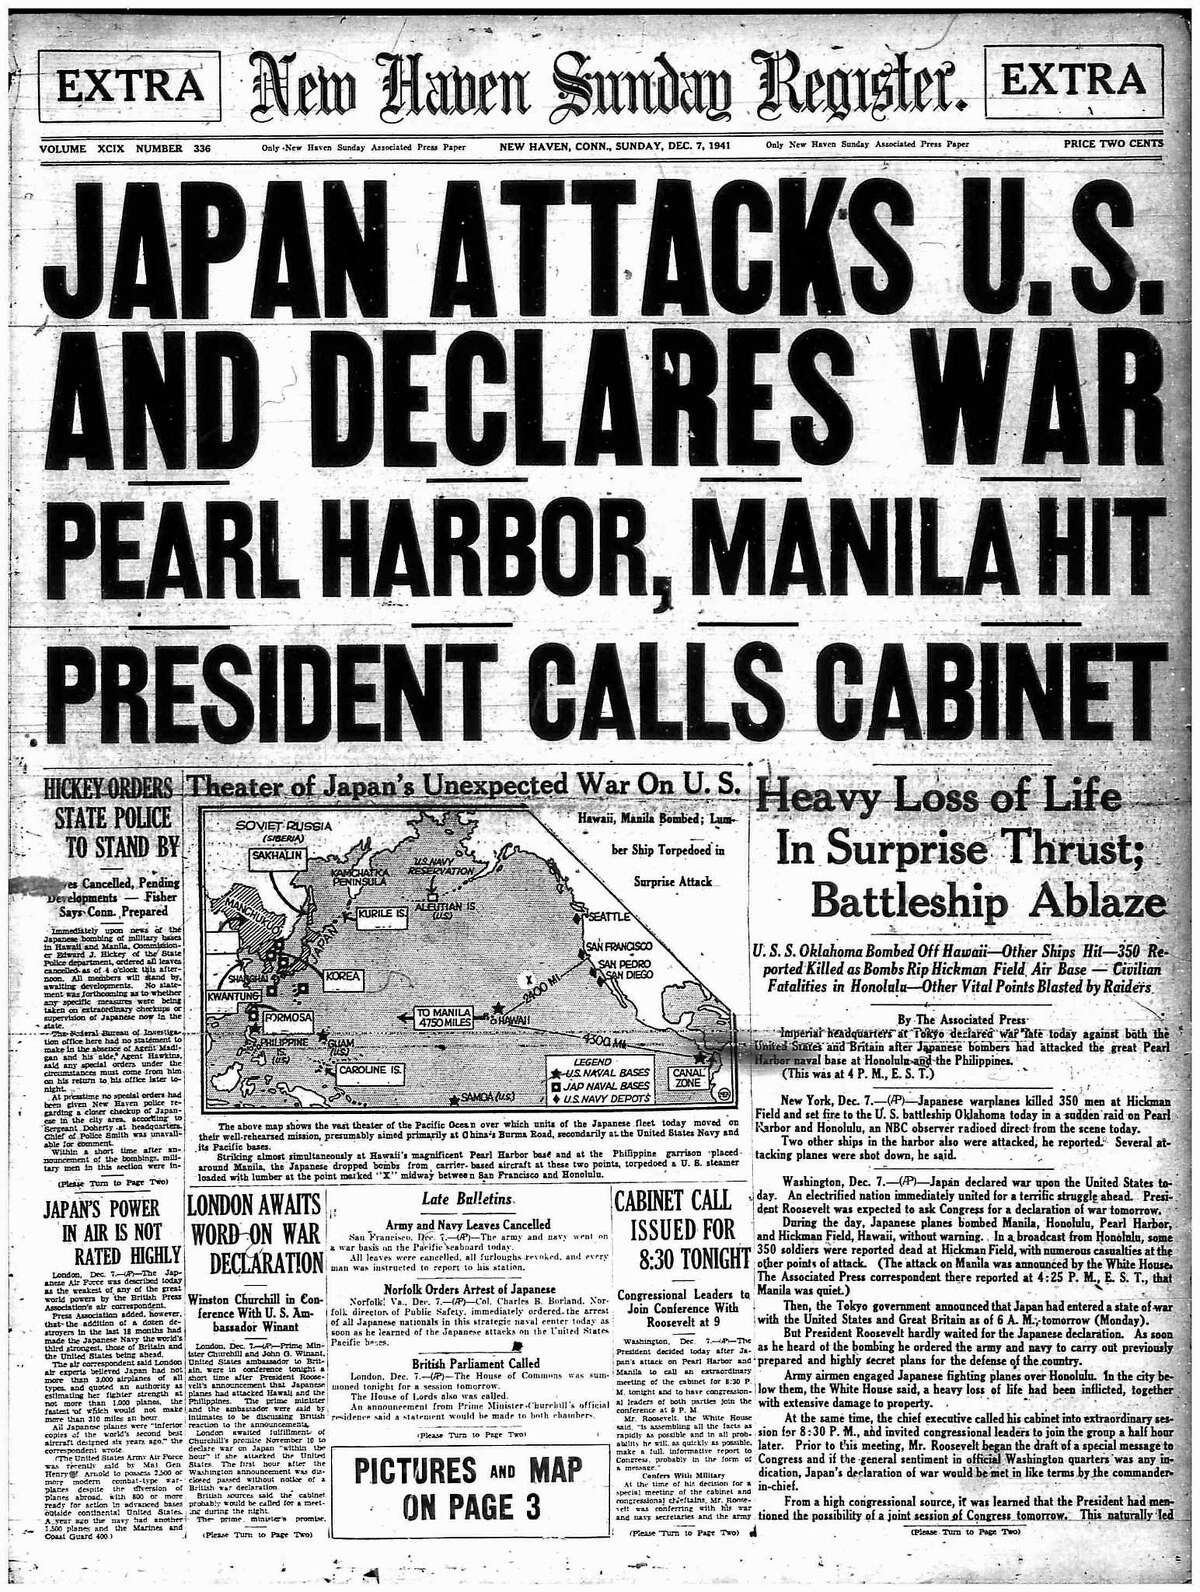 The front page of the New Haven Register in an extra edition on Dec. 7, 1941 after the attack on Pearl Harbor.